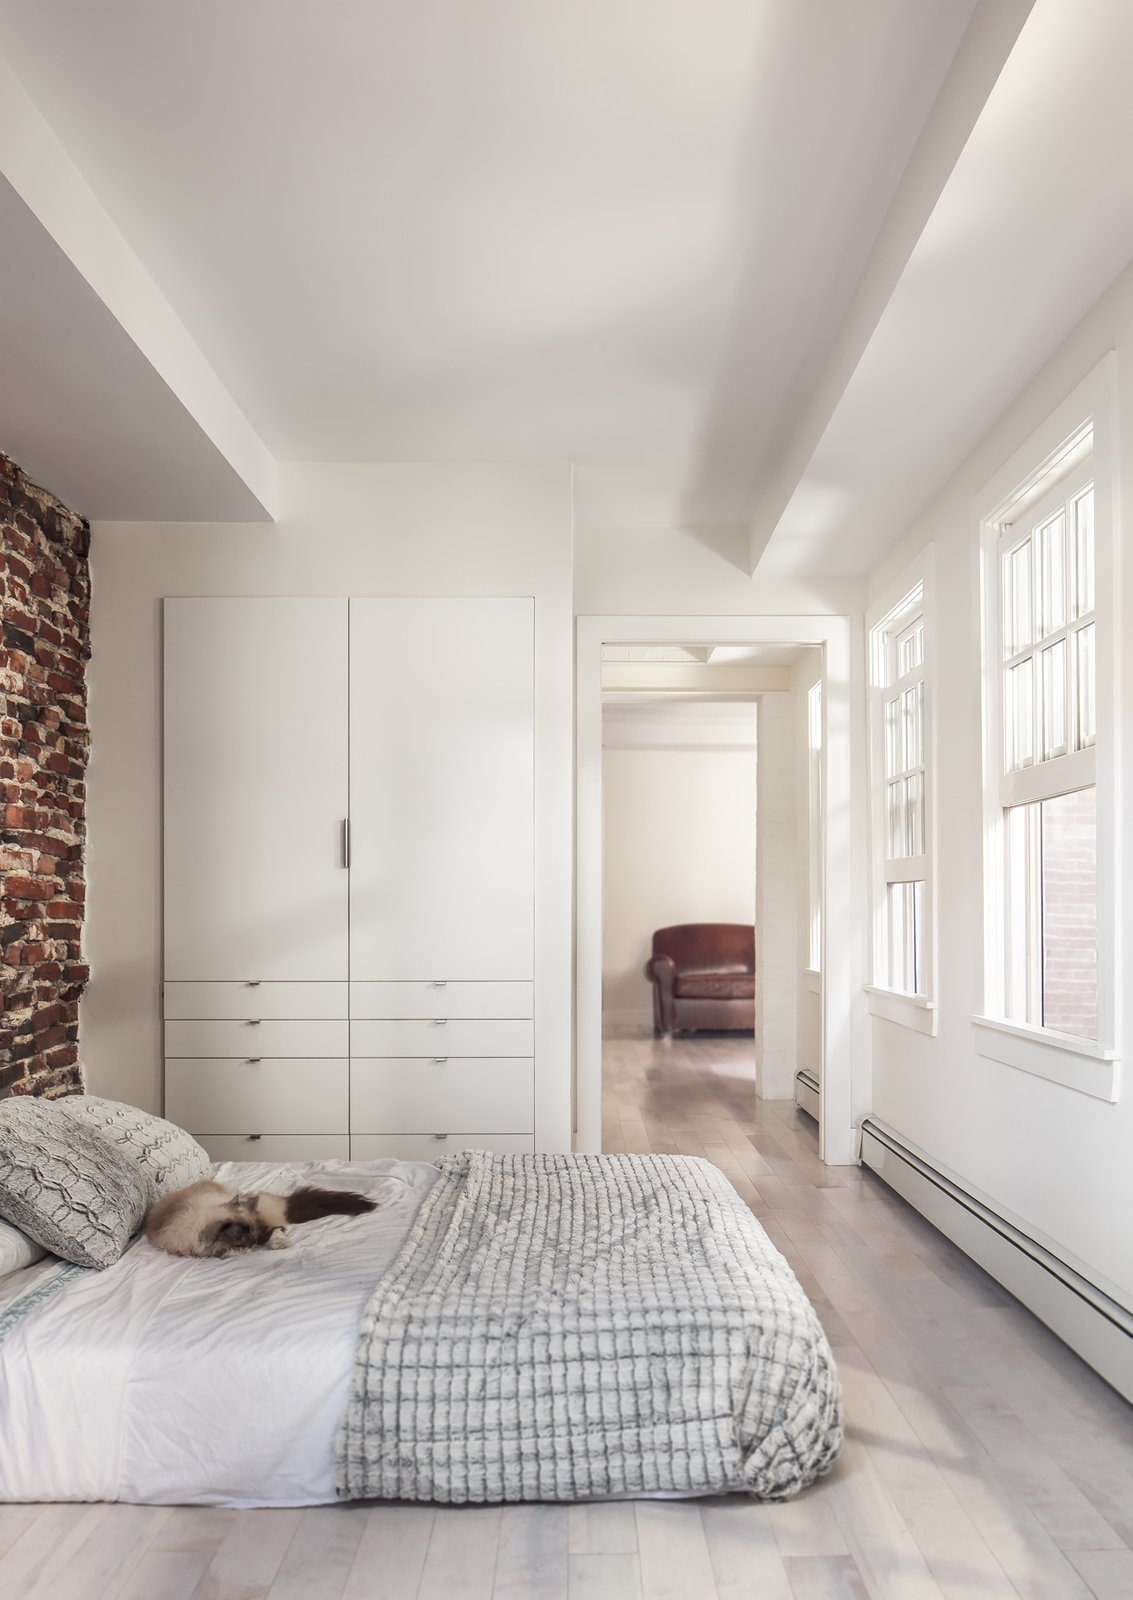 Bedroom, Bed, and Light Hardwood Floor The renovation revealed a 30-foot-deep well beneath the bedroom, which the team half-jokingly considered turning into a fish tank. Instead, they opted for a simple bedroom with plenty of built-in storage.  Bedrooms by Dwell from Beacon Hill